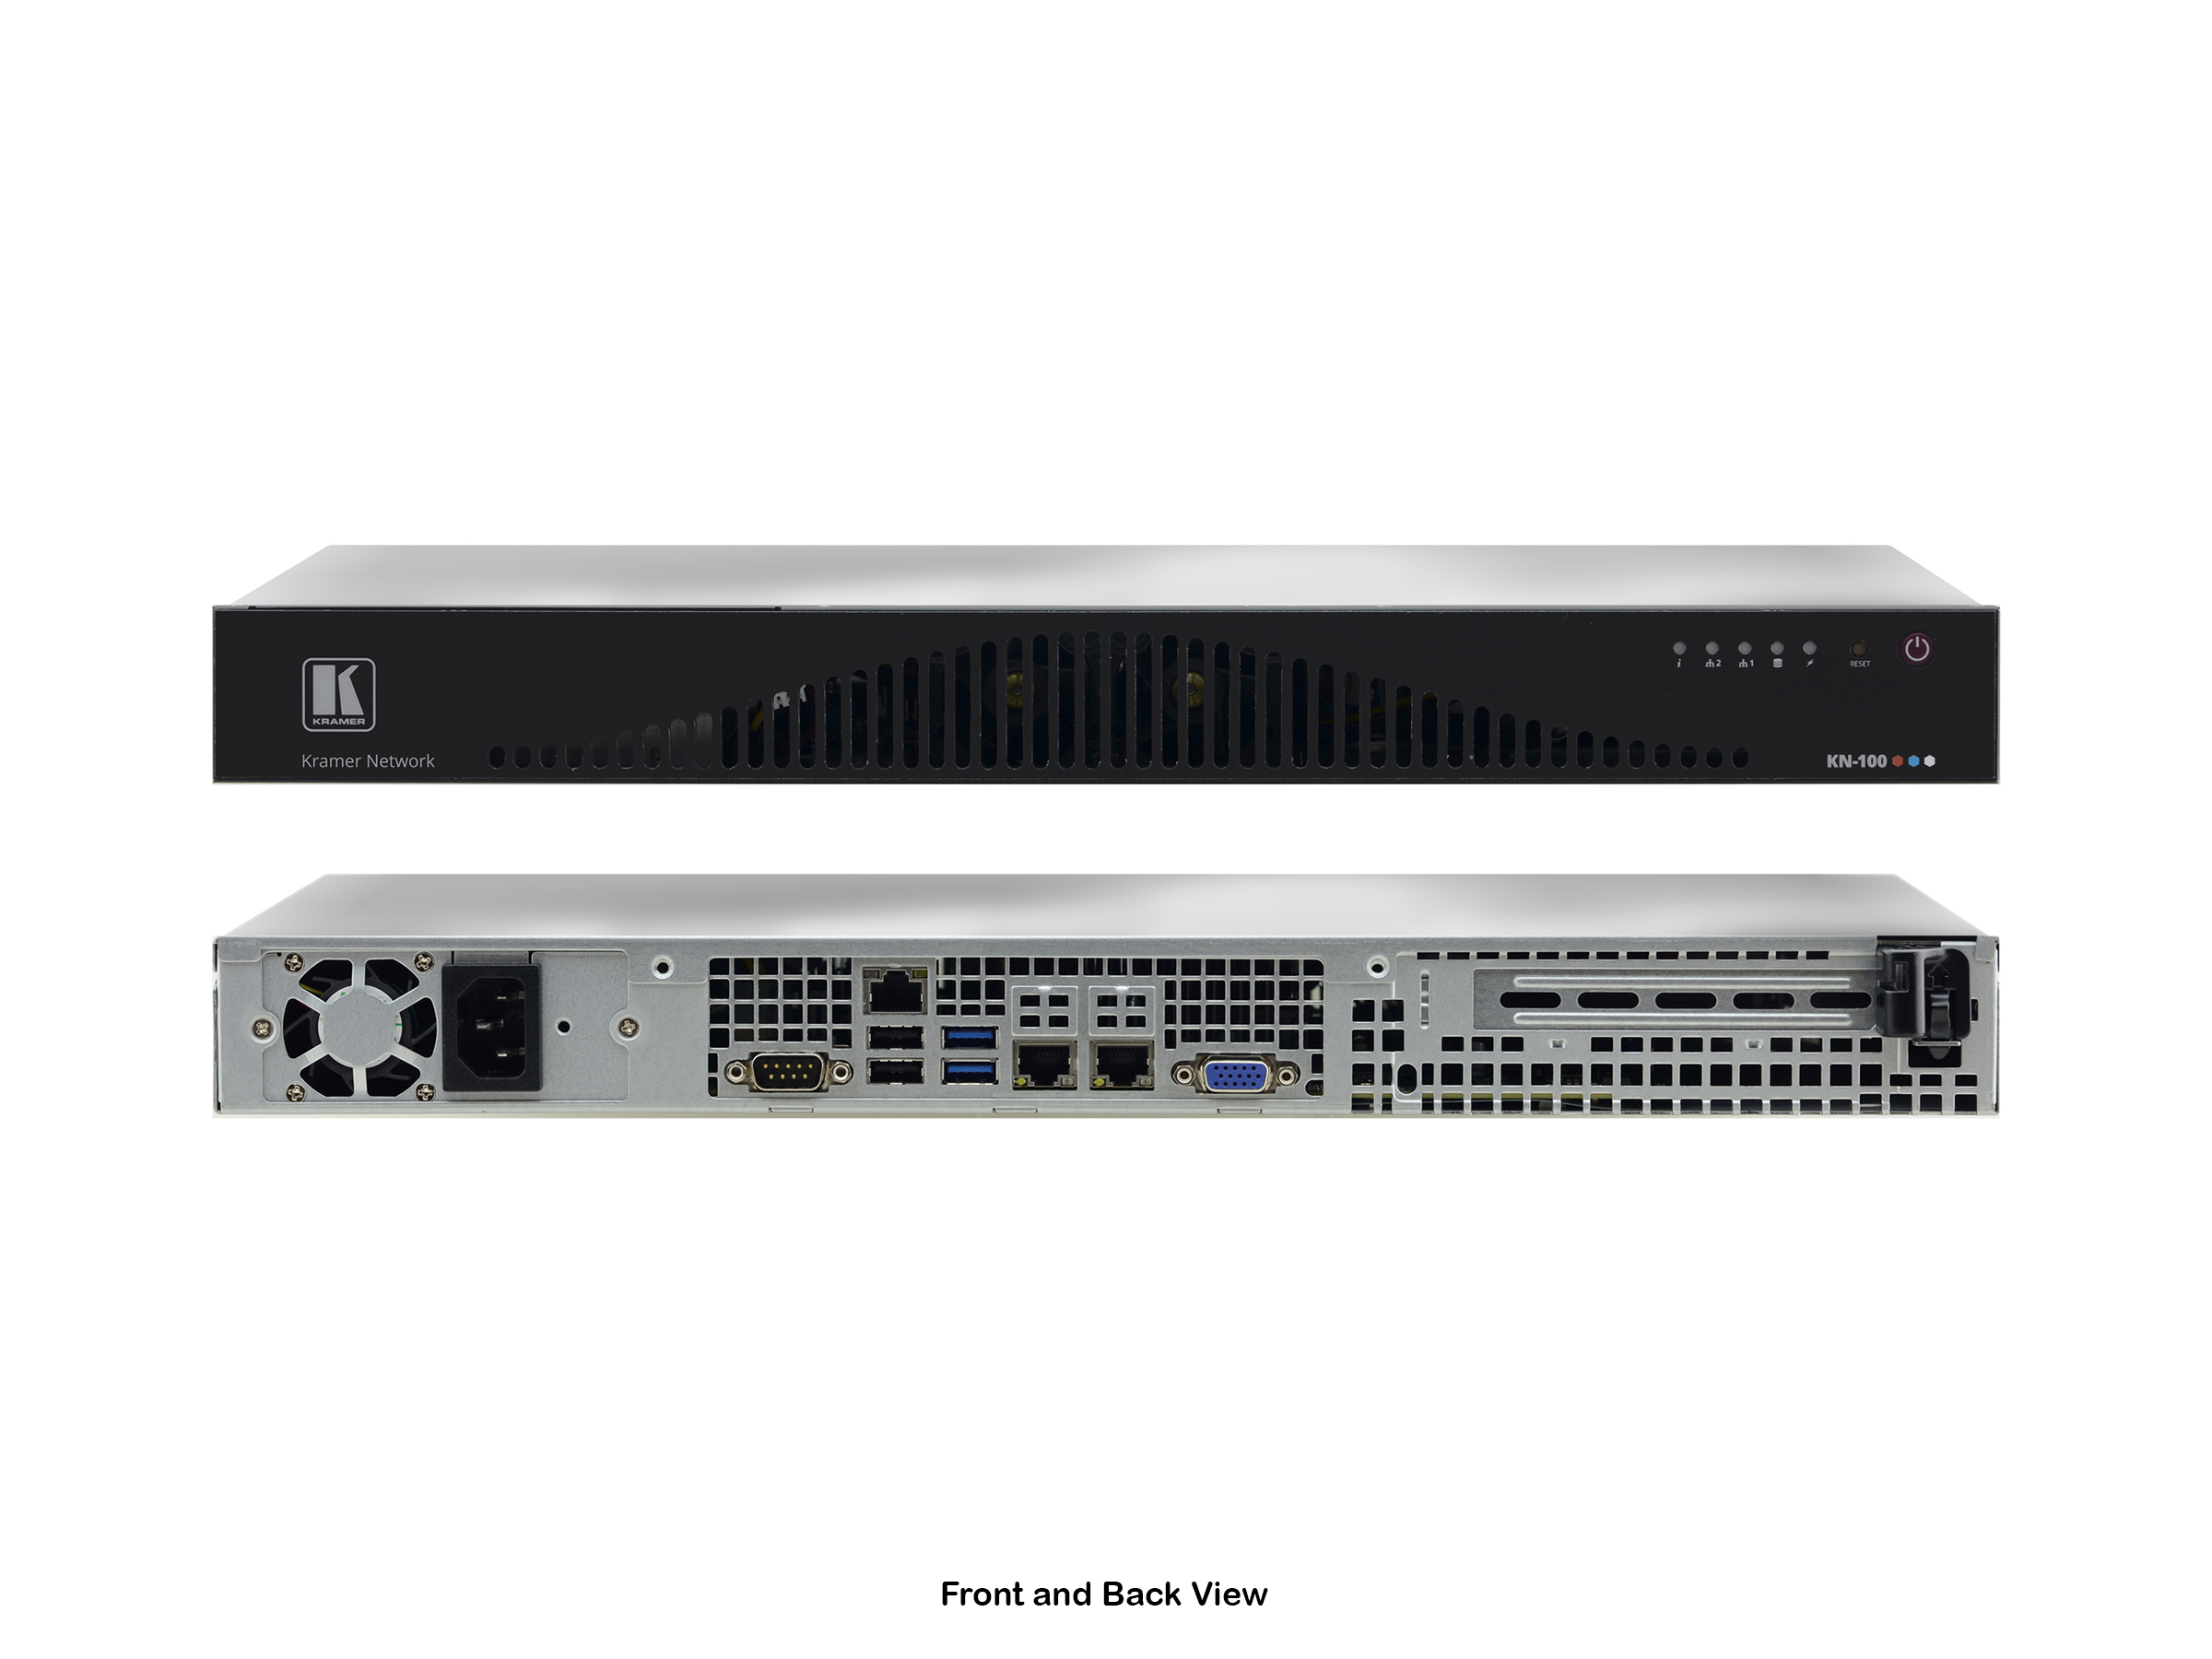 Kramer KN-100 Network Powered Server with Pre-installed Management Software